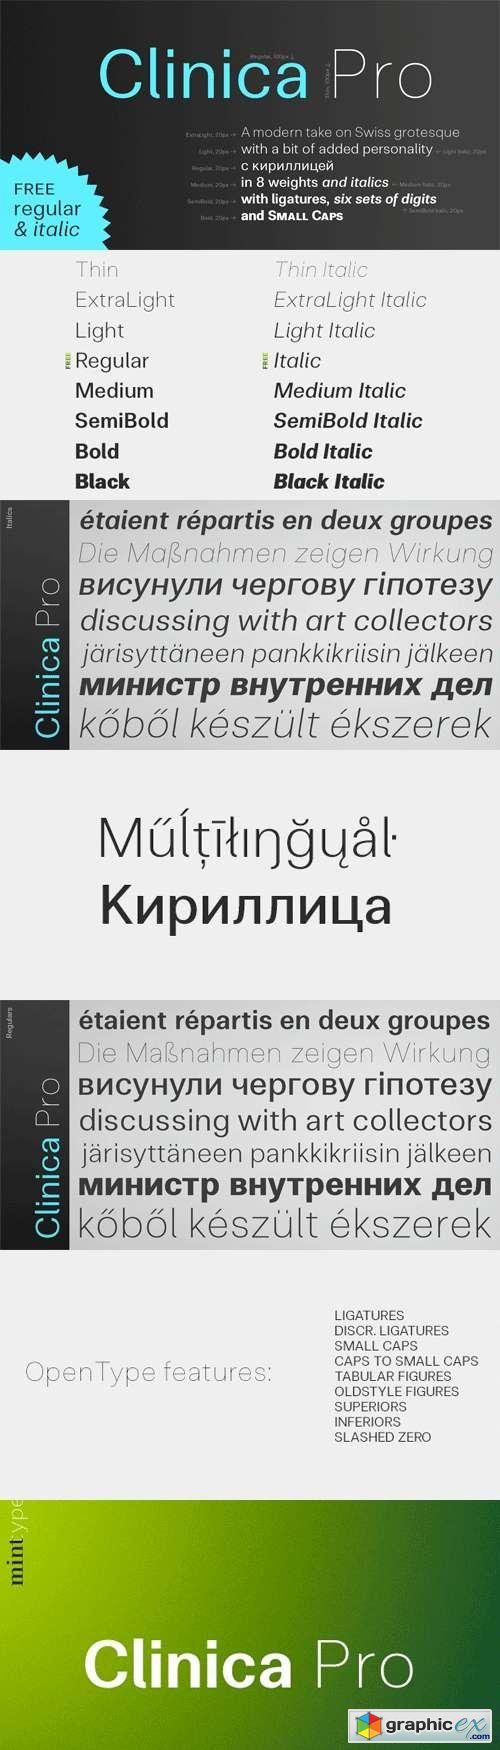 Clinica Pro Font Family - 16 Fonts for $280